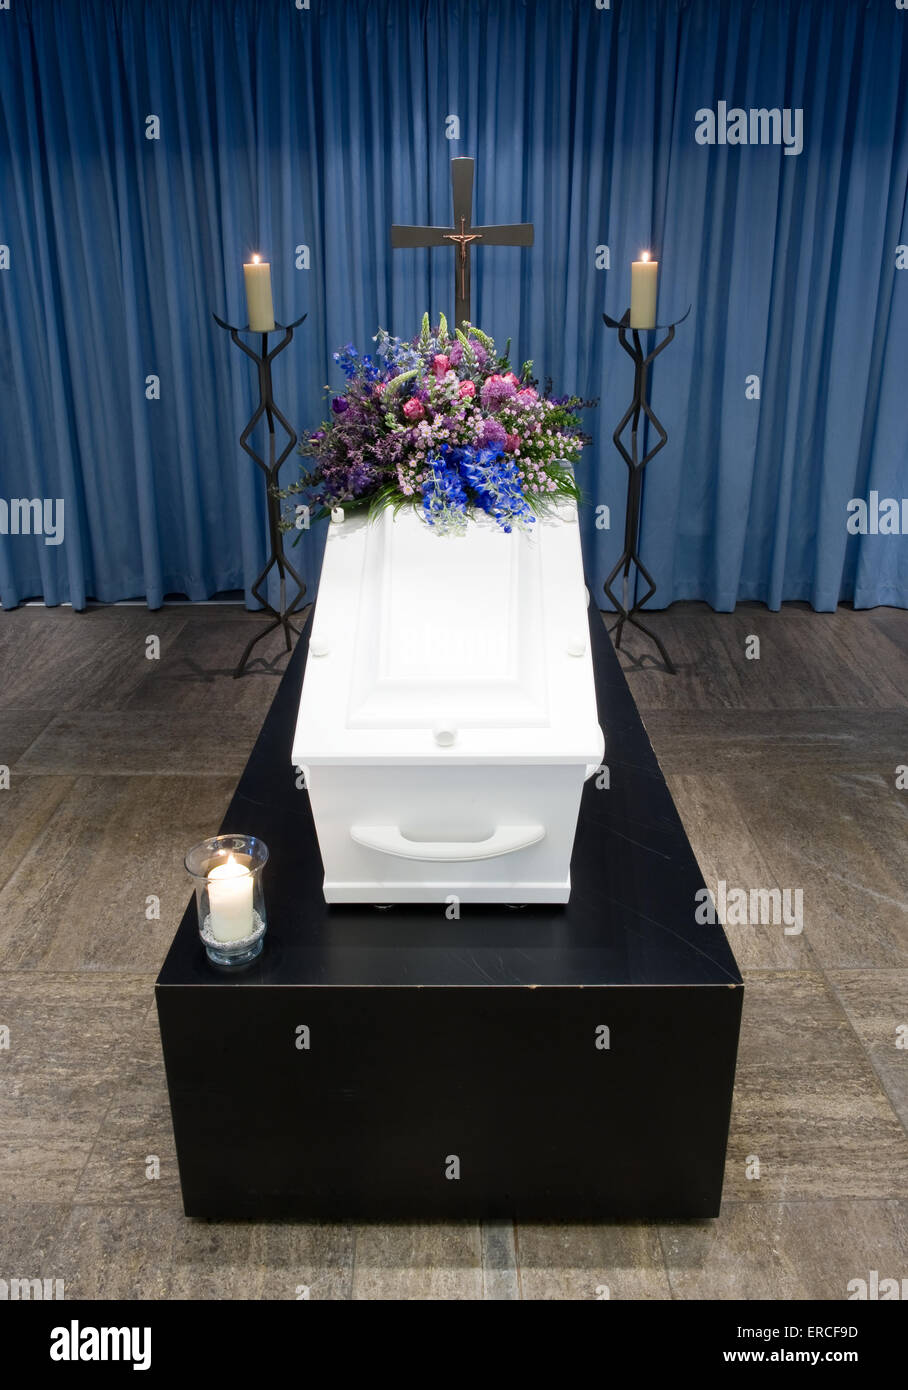 A coffin with a flower arrangement in a morgue with two burning candles and a cross - Stock Image